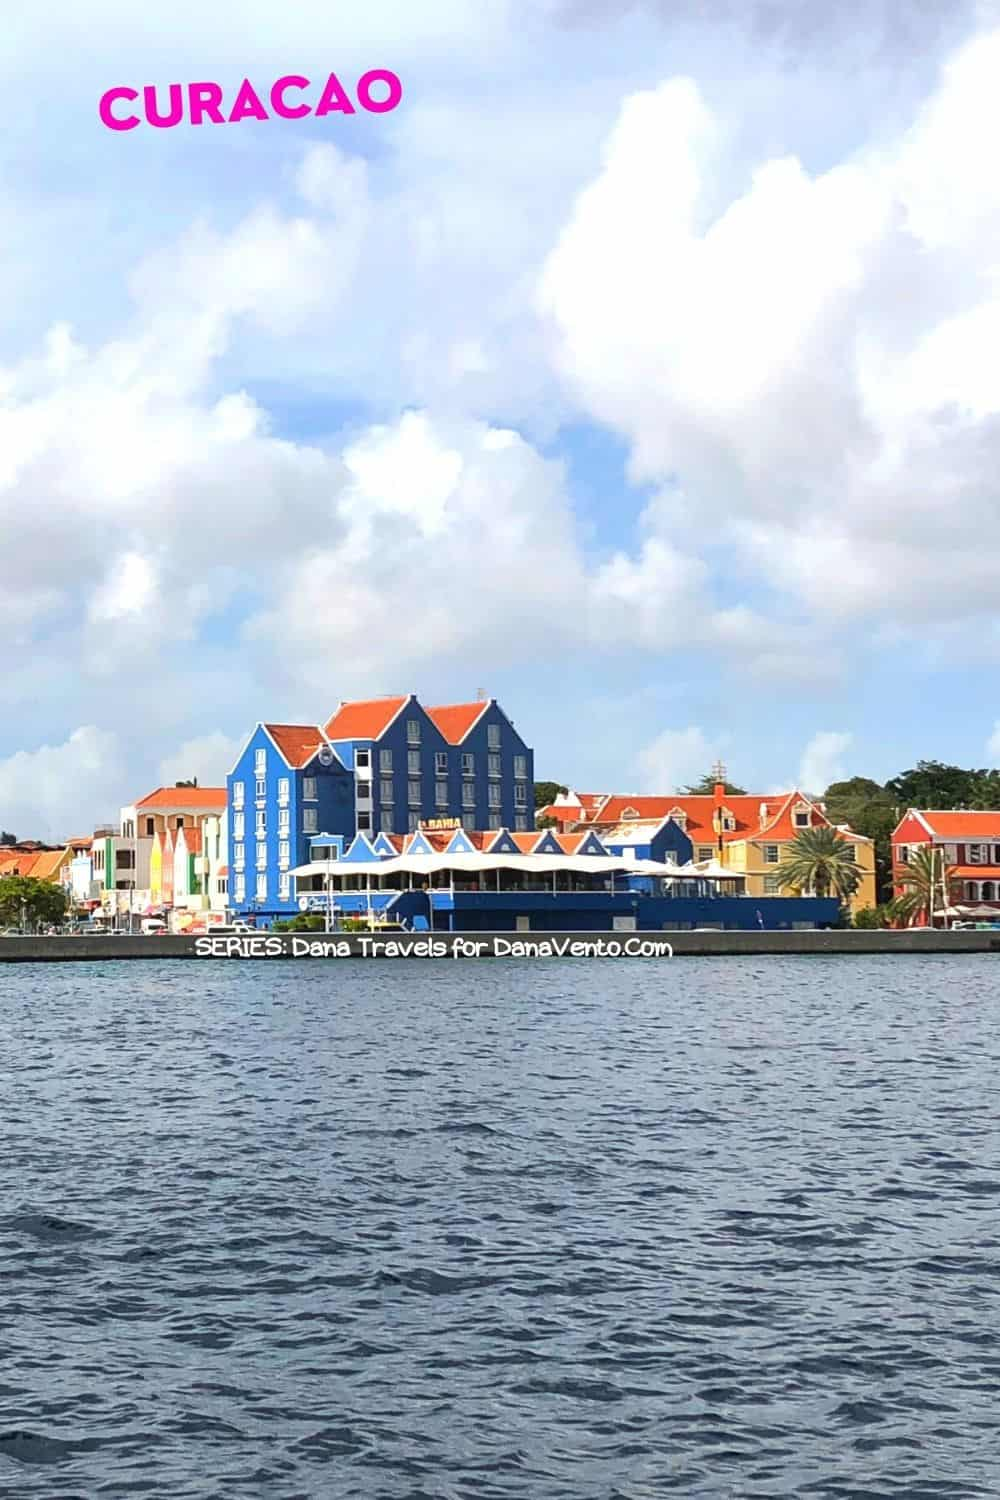 Willemstad Curacao View Via St Anna Bay: Interesting Things to Experience in Willemstad Curacao